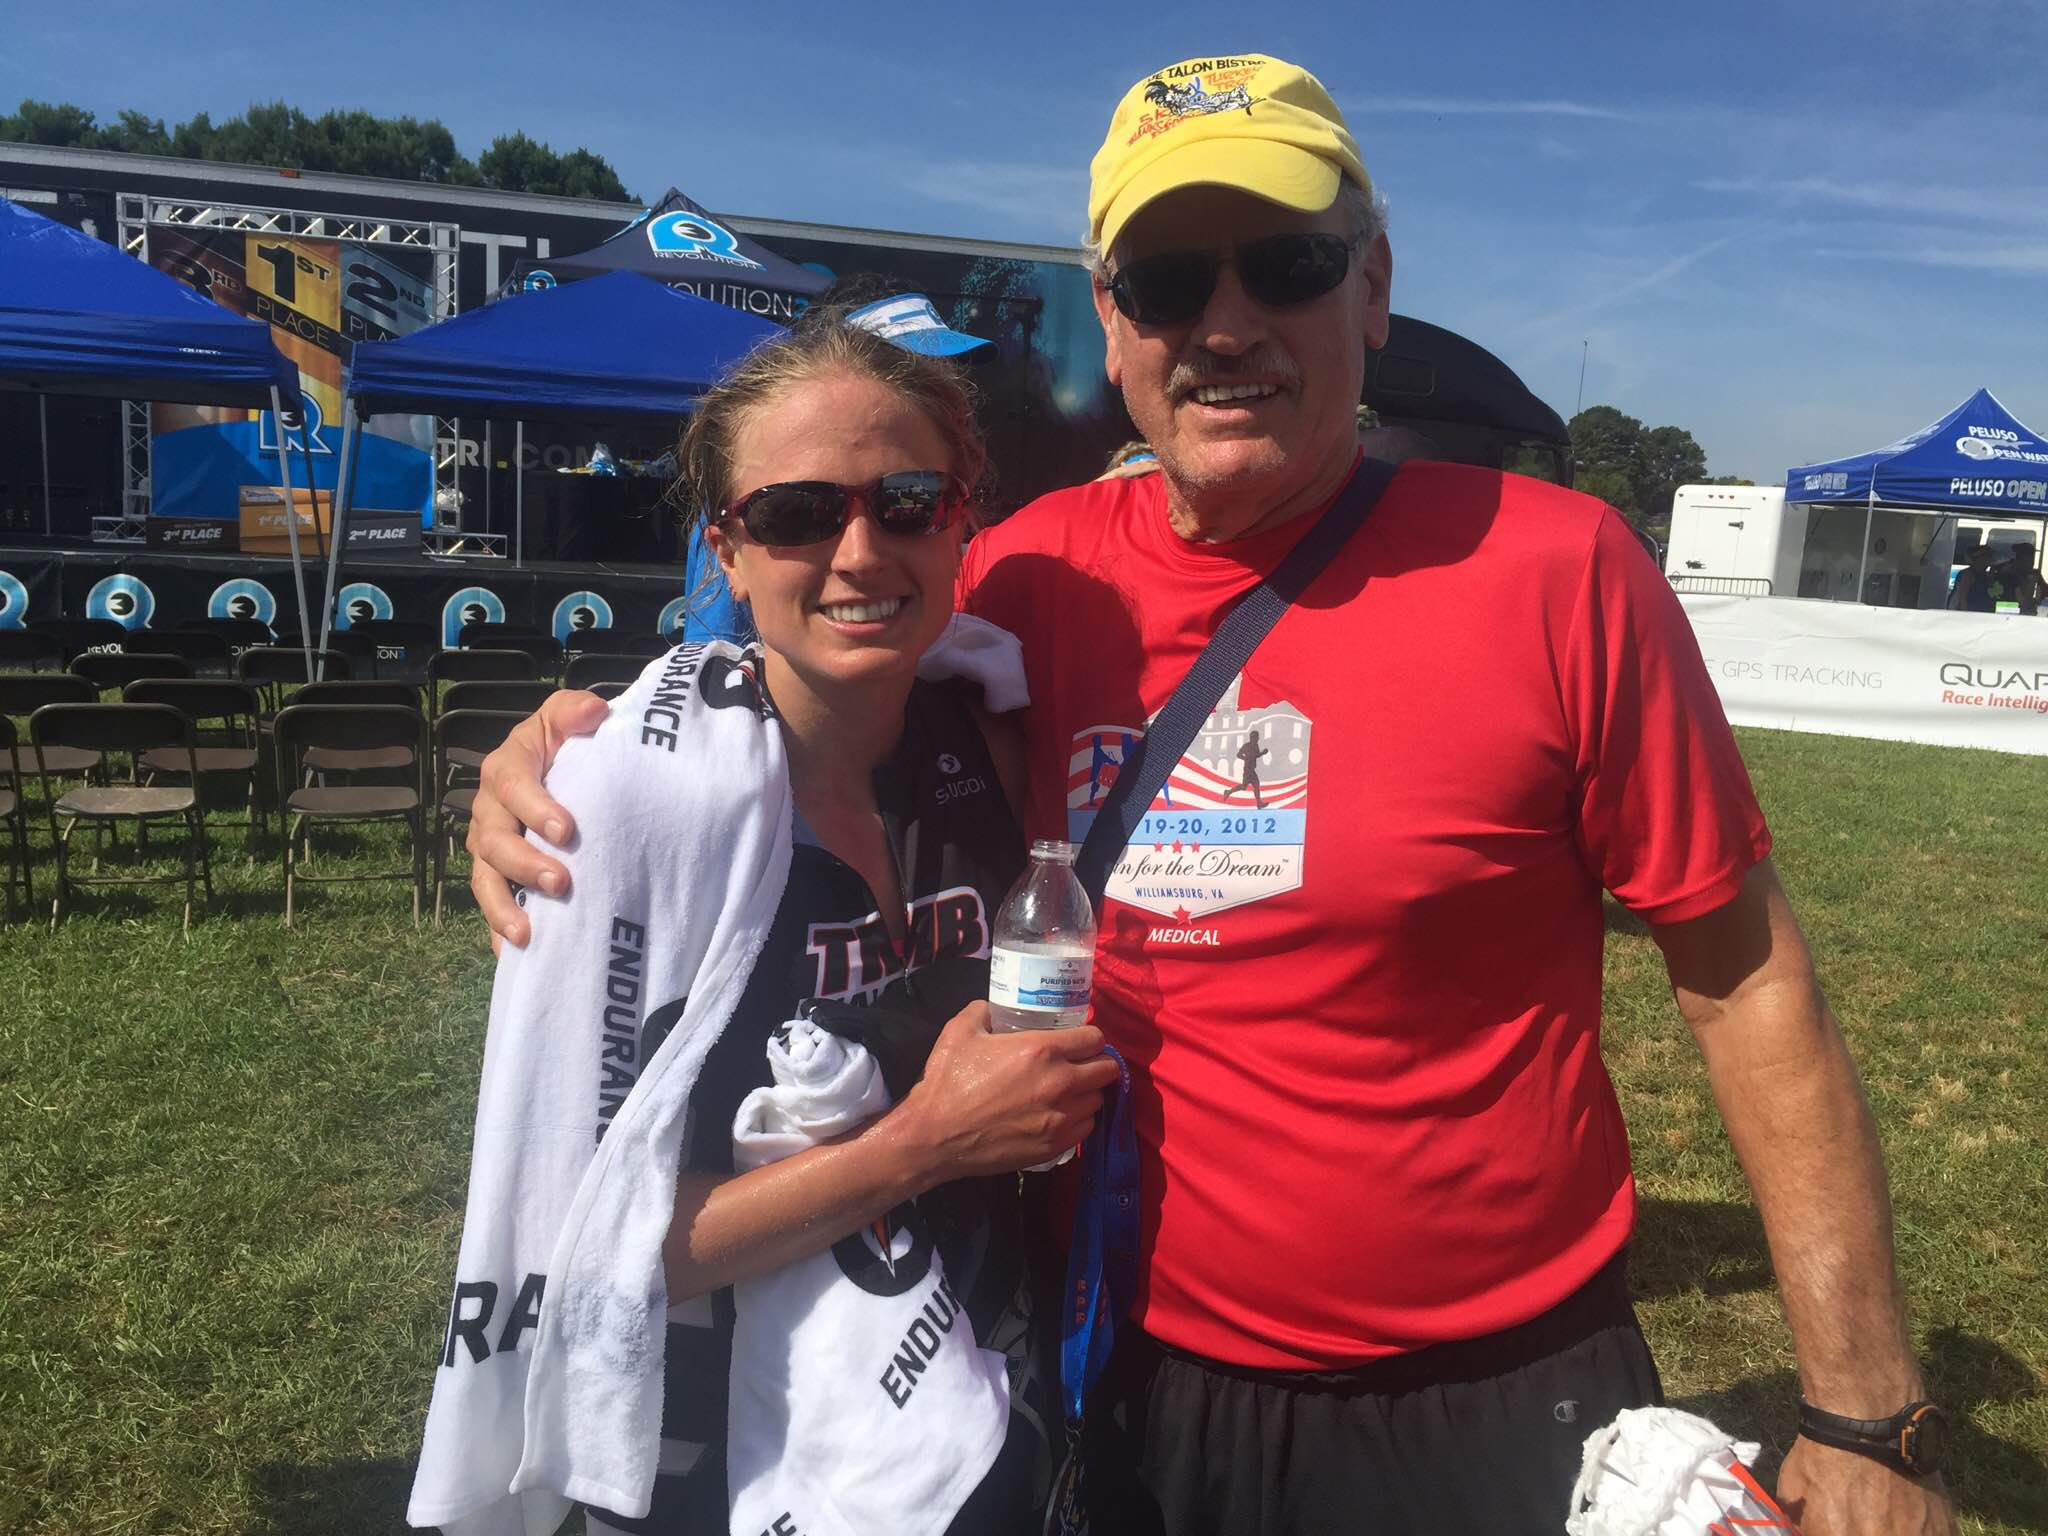 My Sherpa and Cheerleader, Dr. Ron, and I at the finish